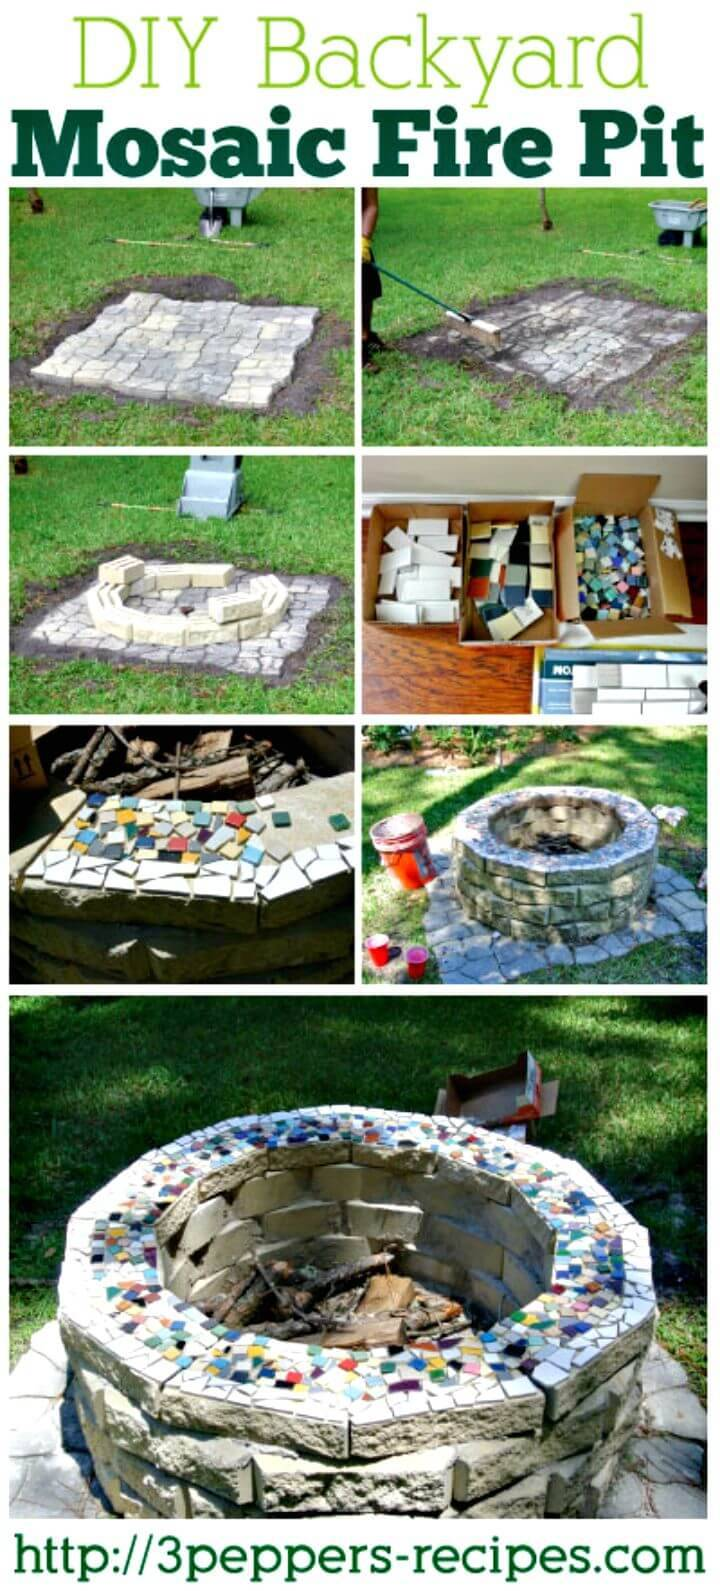 Easy DIY Backyard Mosaic Fire Pit